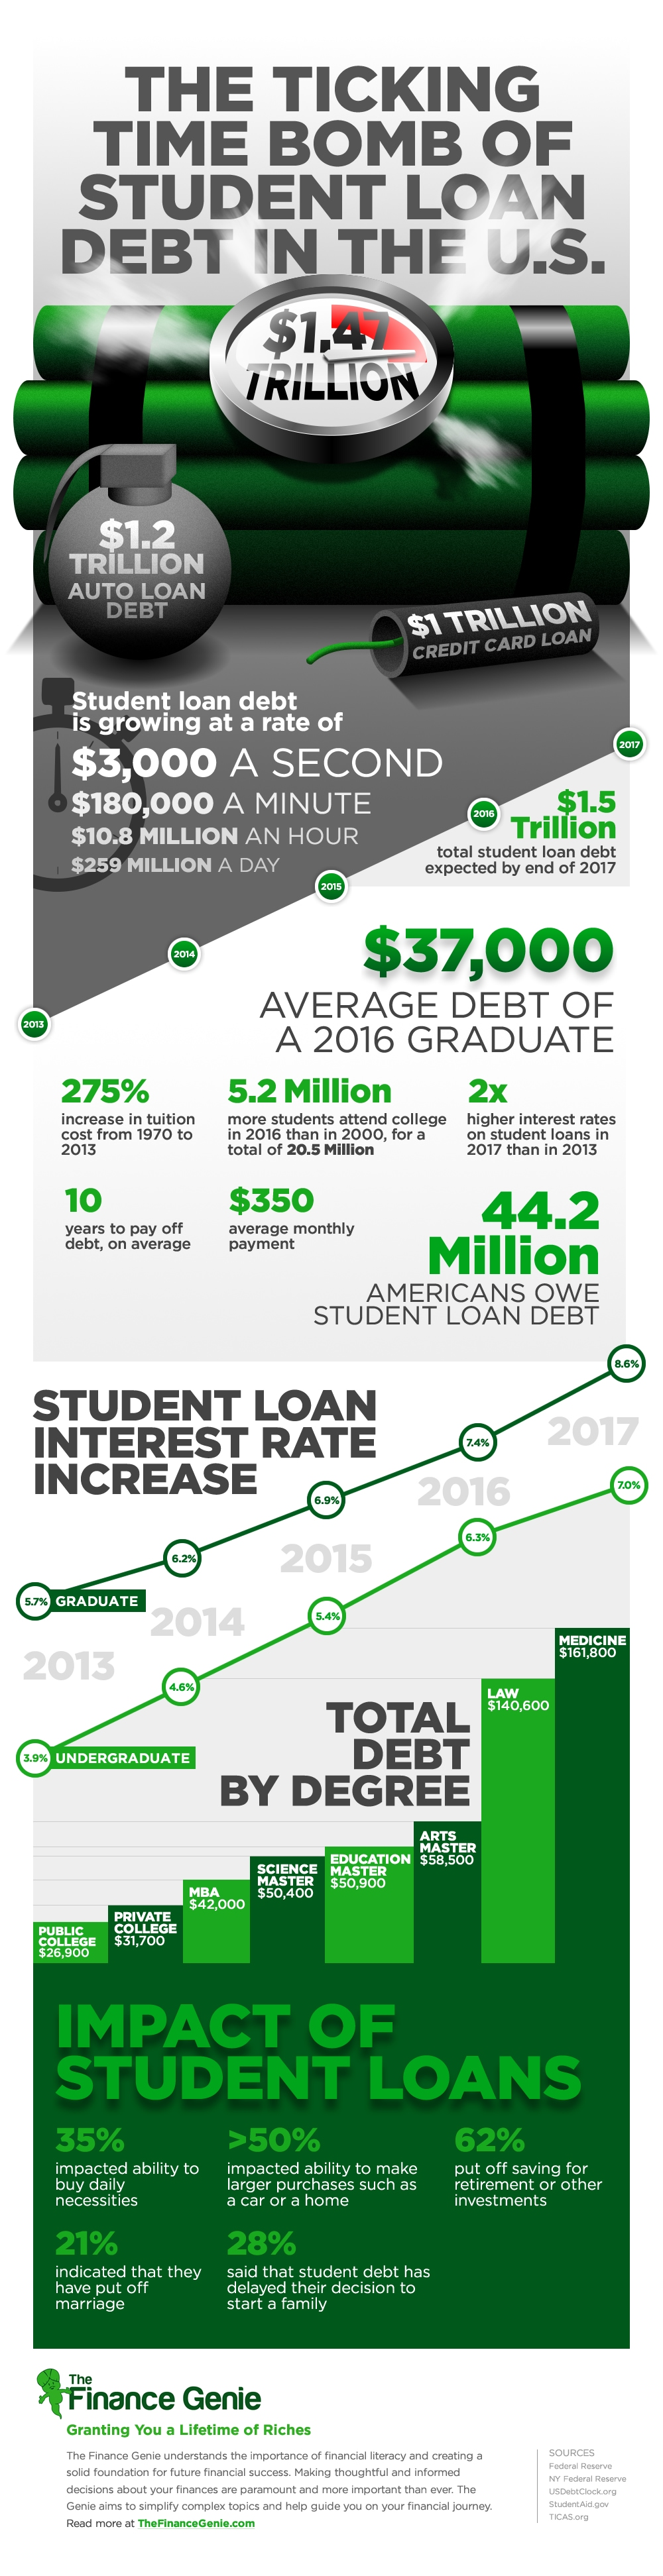 Student-Loan-Debt-Infographic